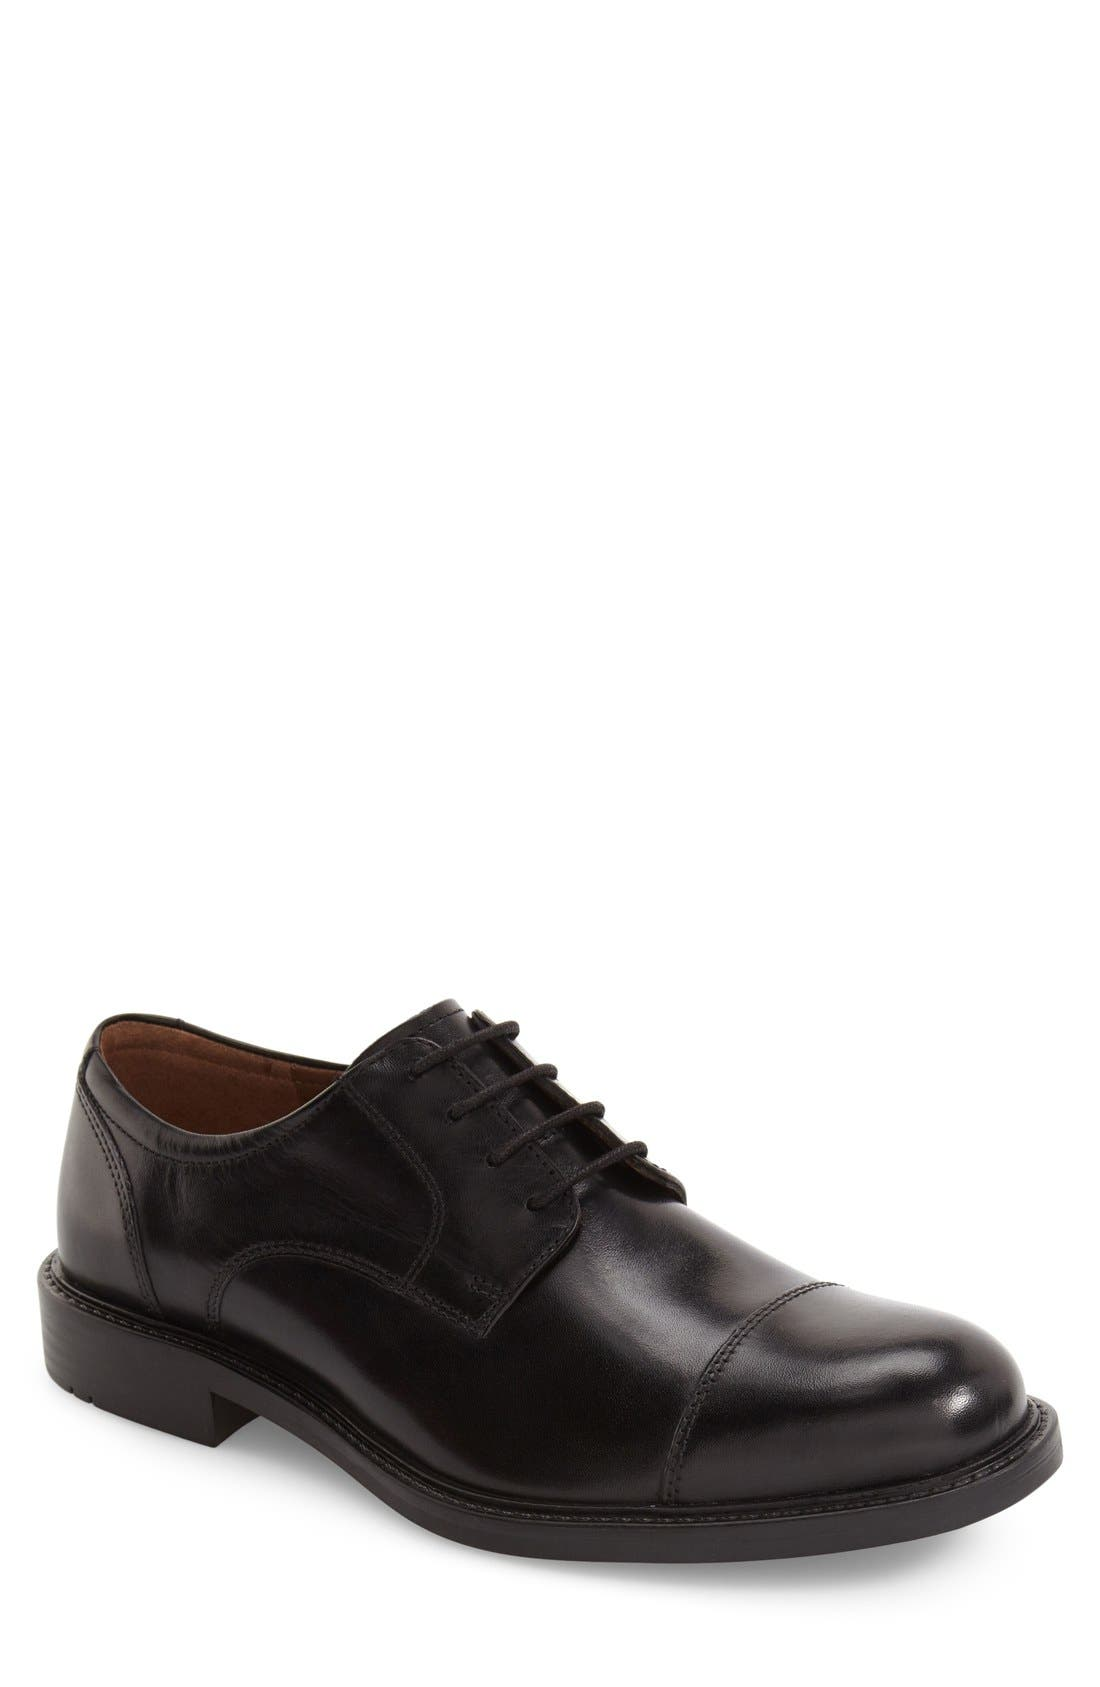 Tabor Cap Toe Derby,                             Alternate thumbnail 2, color,                             BLACK LEATHER